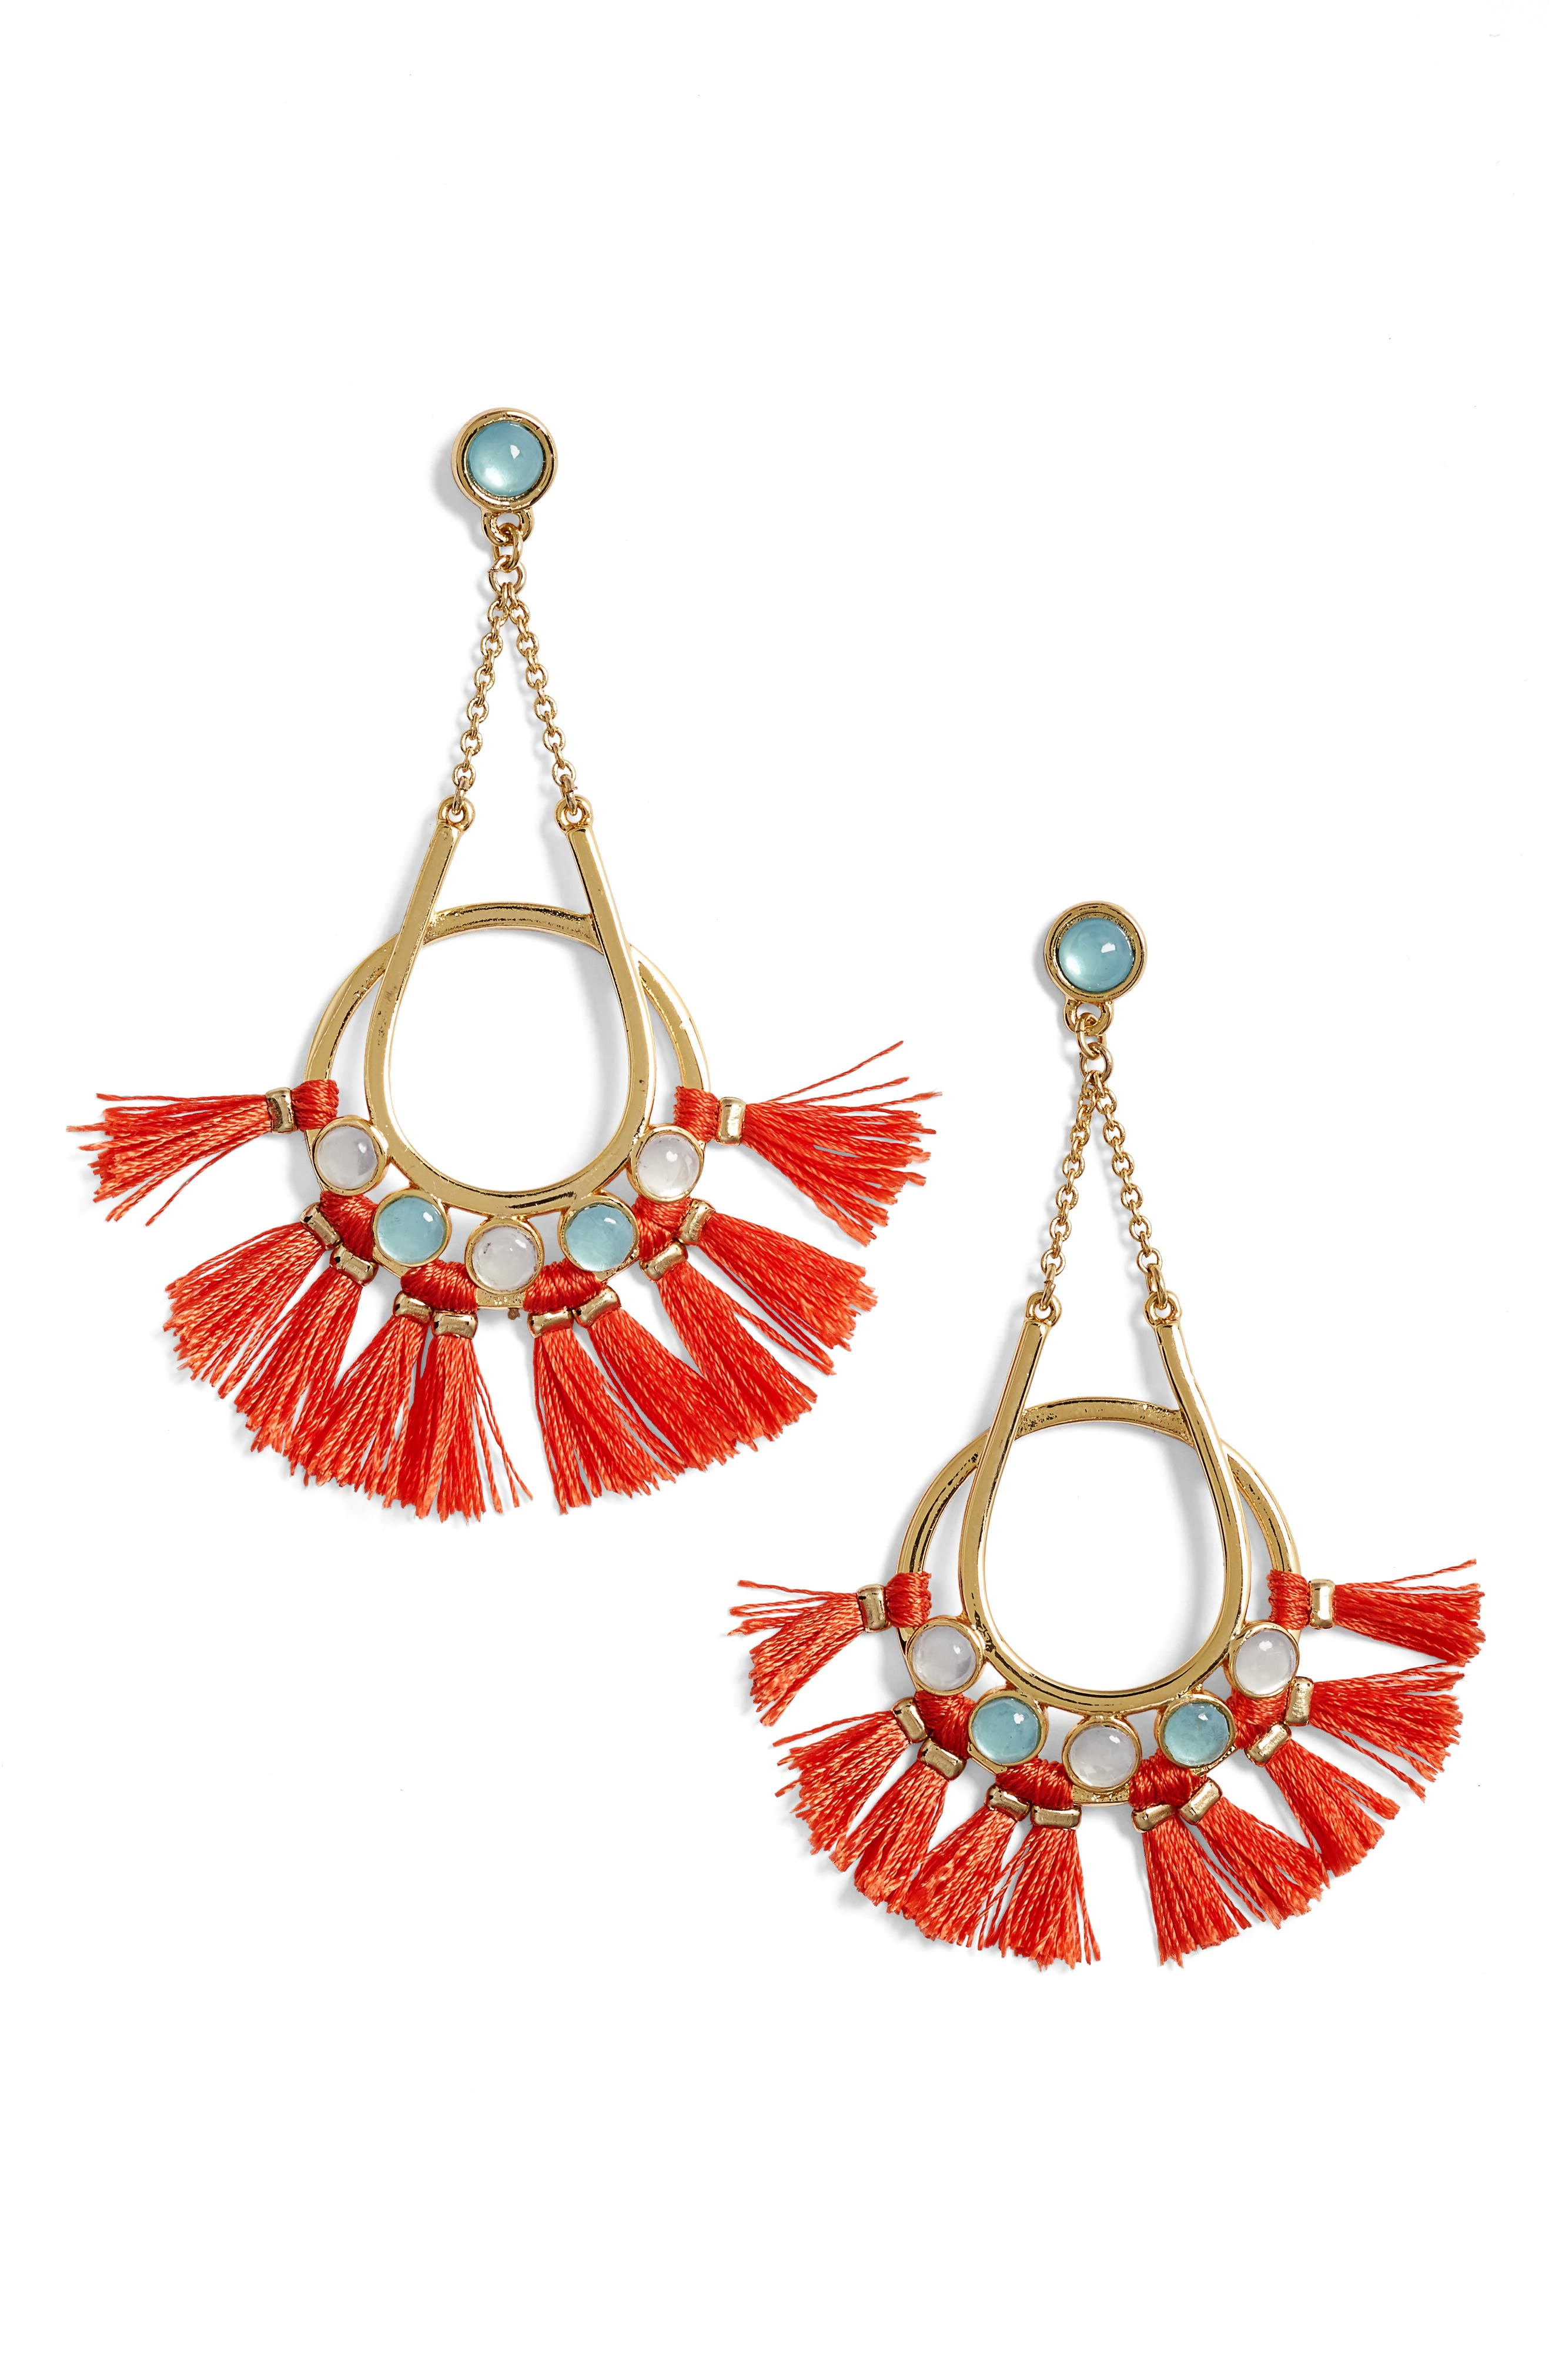 Main Image - Rebecca Minkoff Utopia Tassel Chandelier Earrings